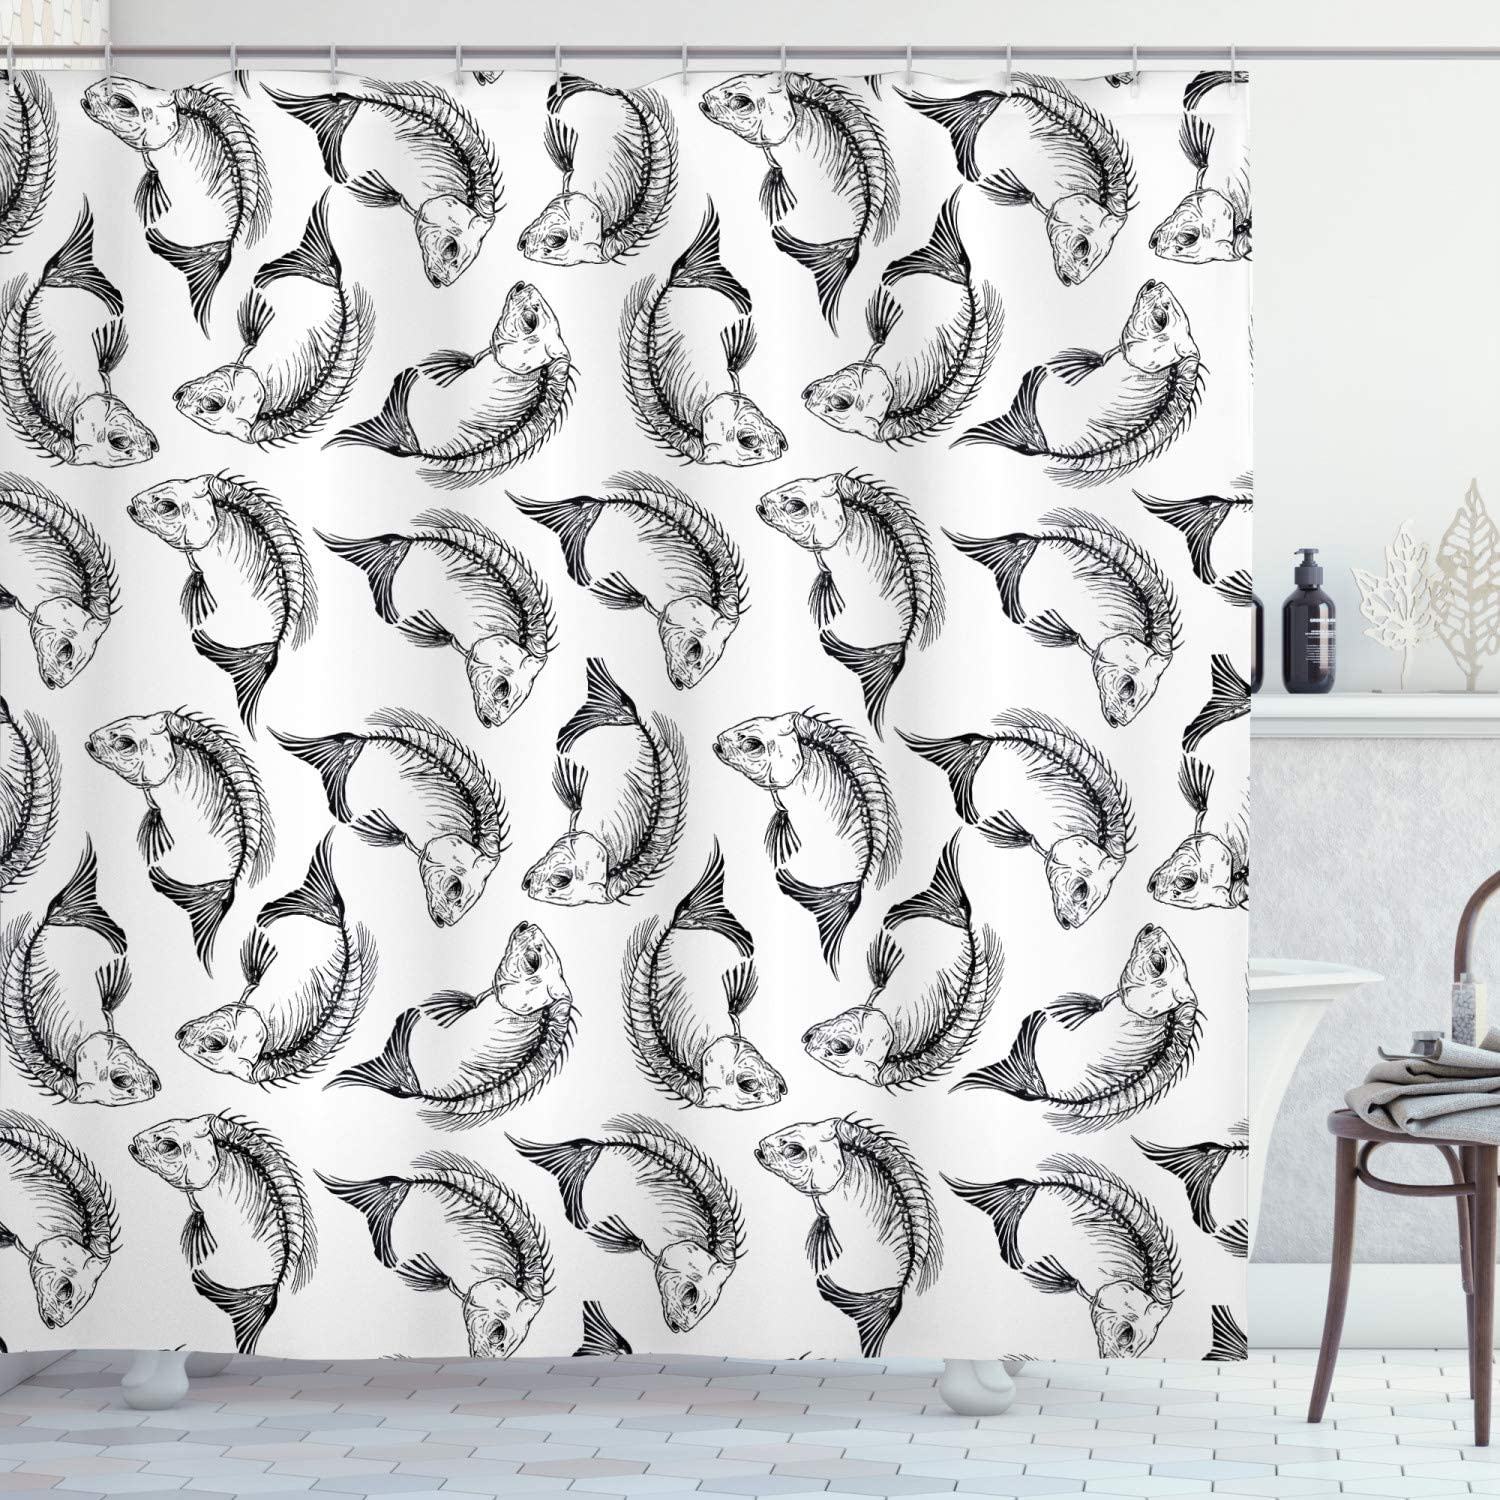 5 popular Ambesonne Skull Super intense SALE Shower Curtain Dead Fish Themed Patte Bones and